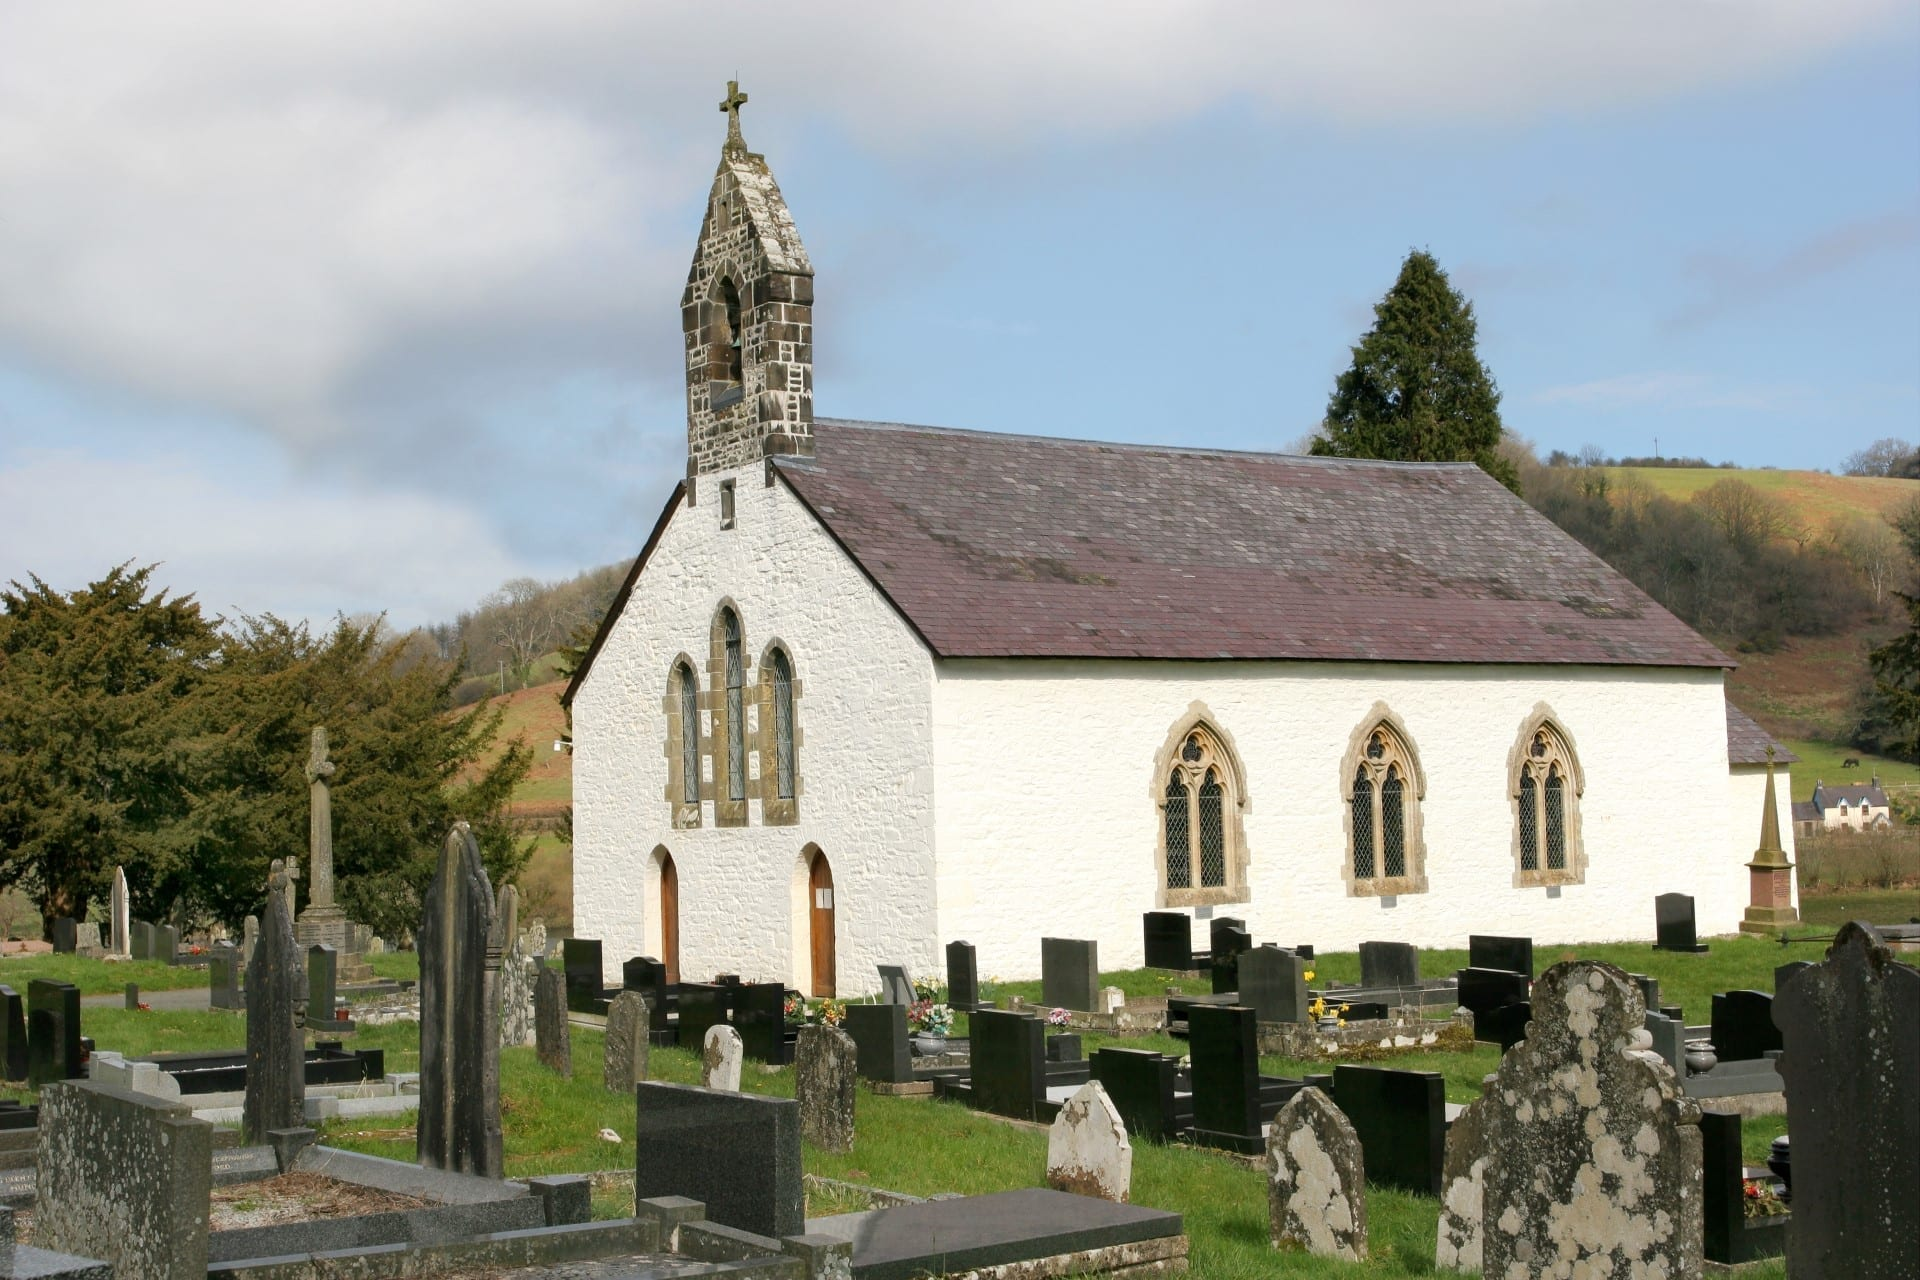 A chapel with the graveyard in the picture in wales